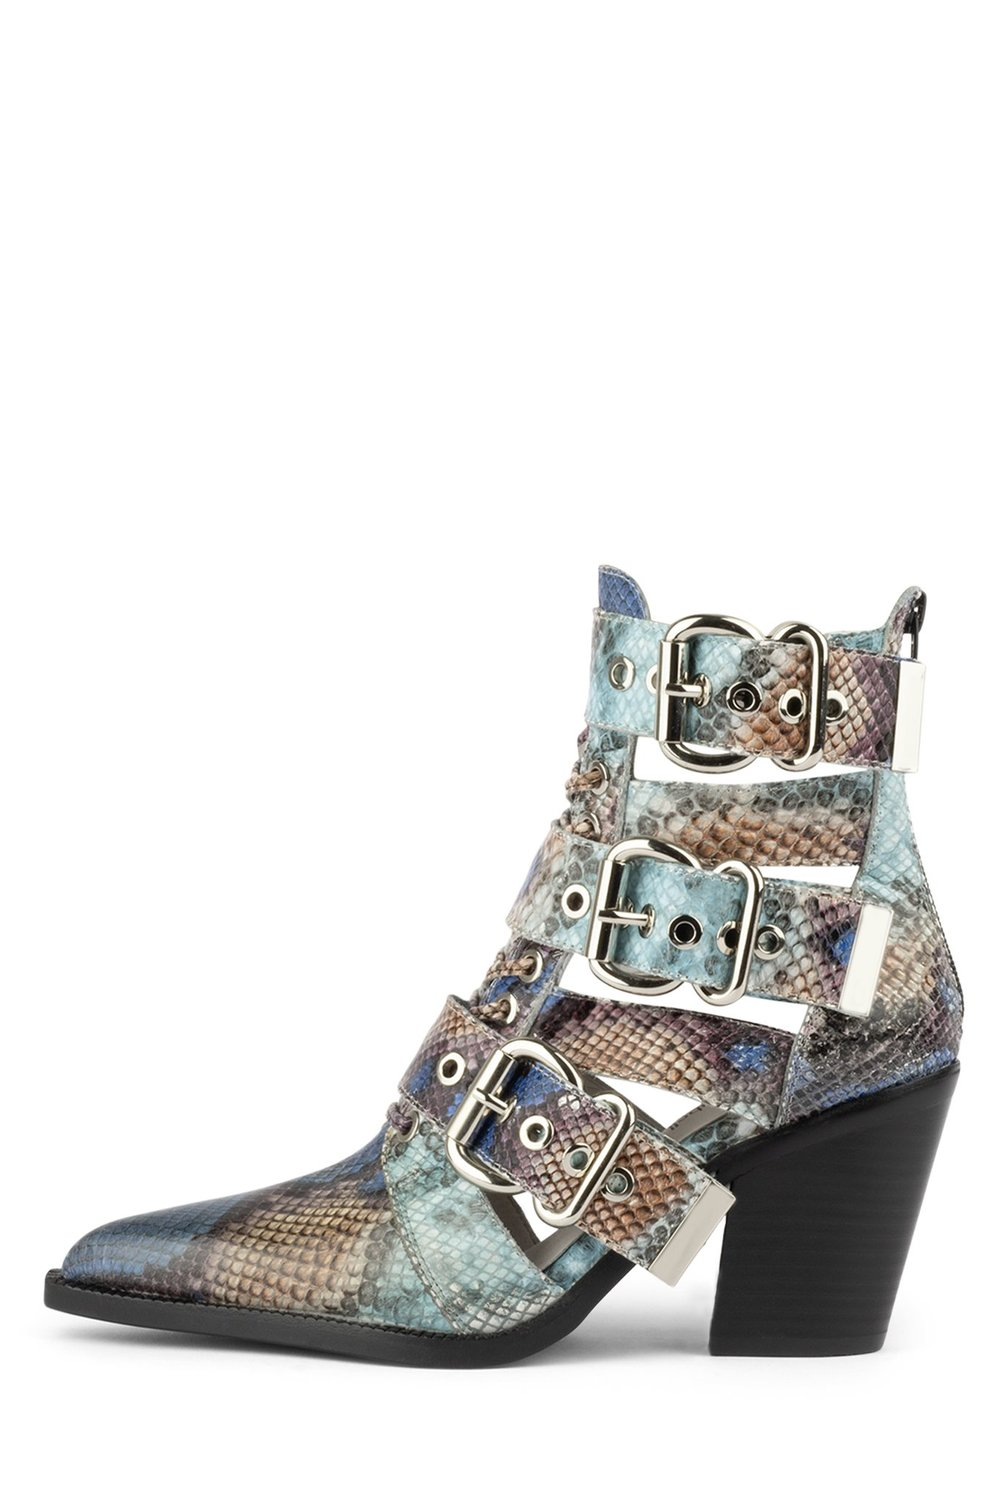 Jeffrey Campbell CACERES. Available in multiple colors, prints. Jeffrey Campbell. $275.